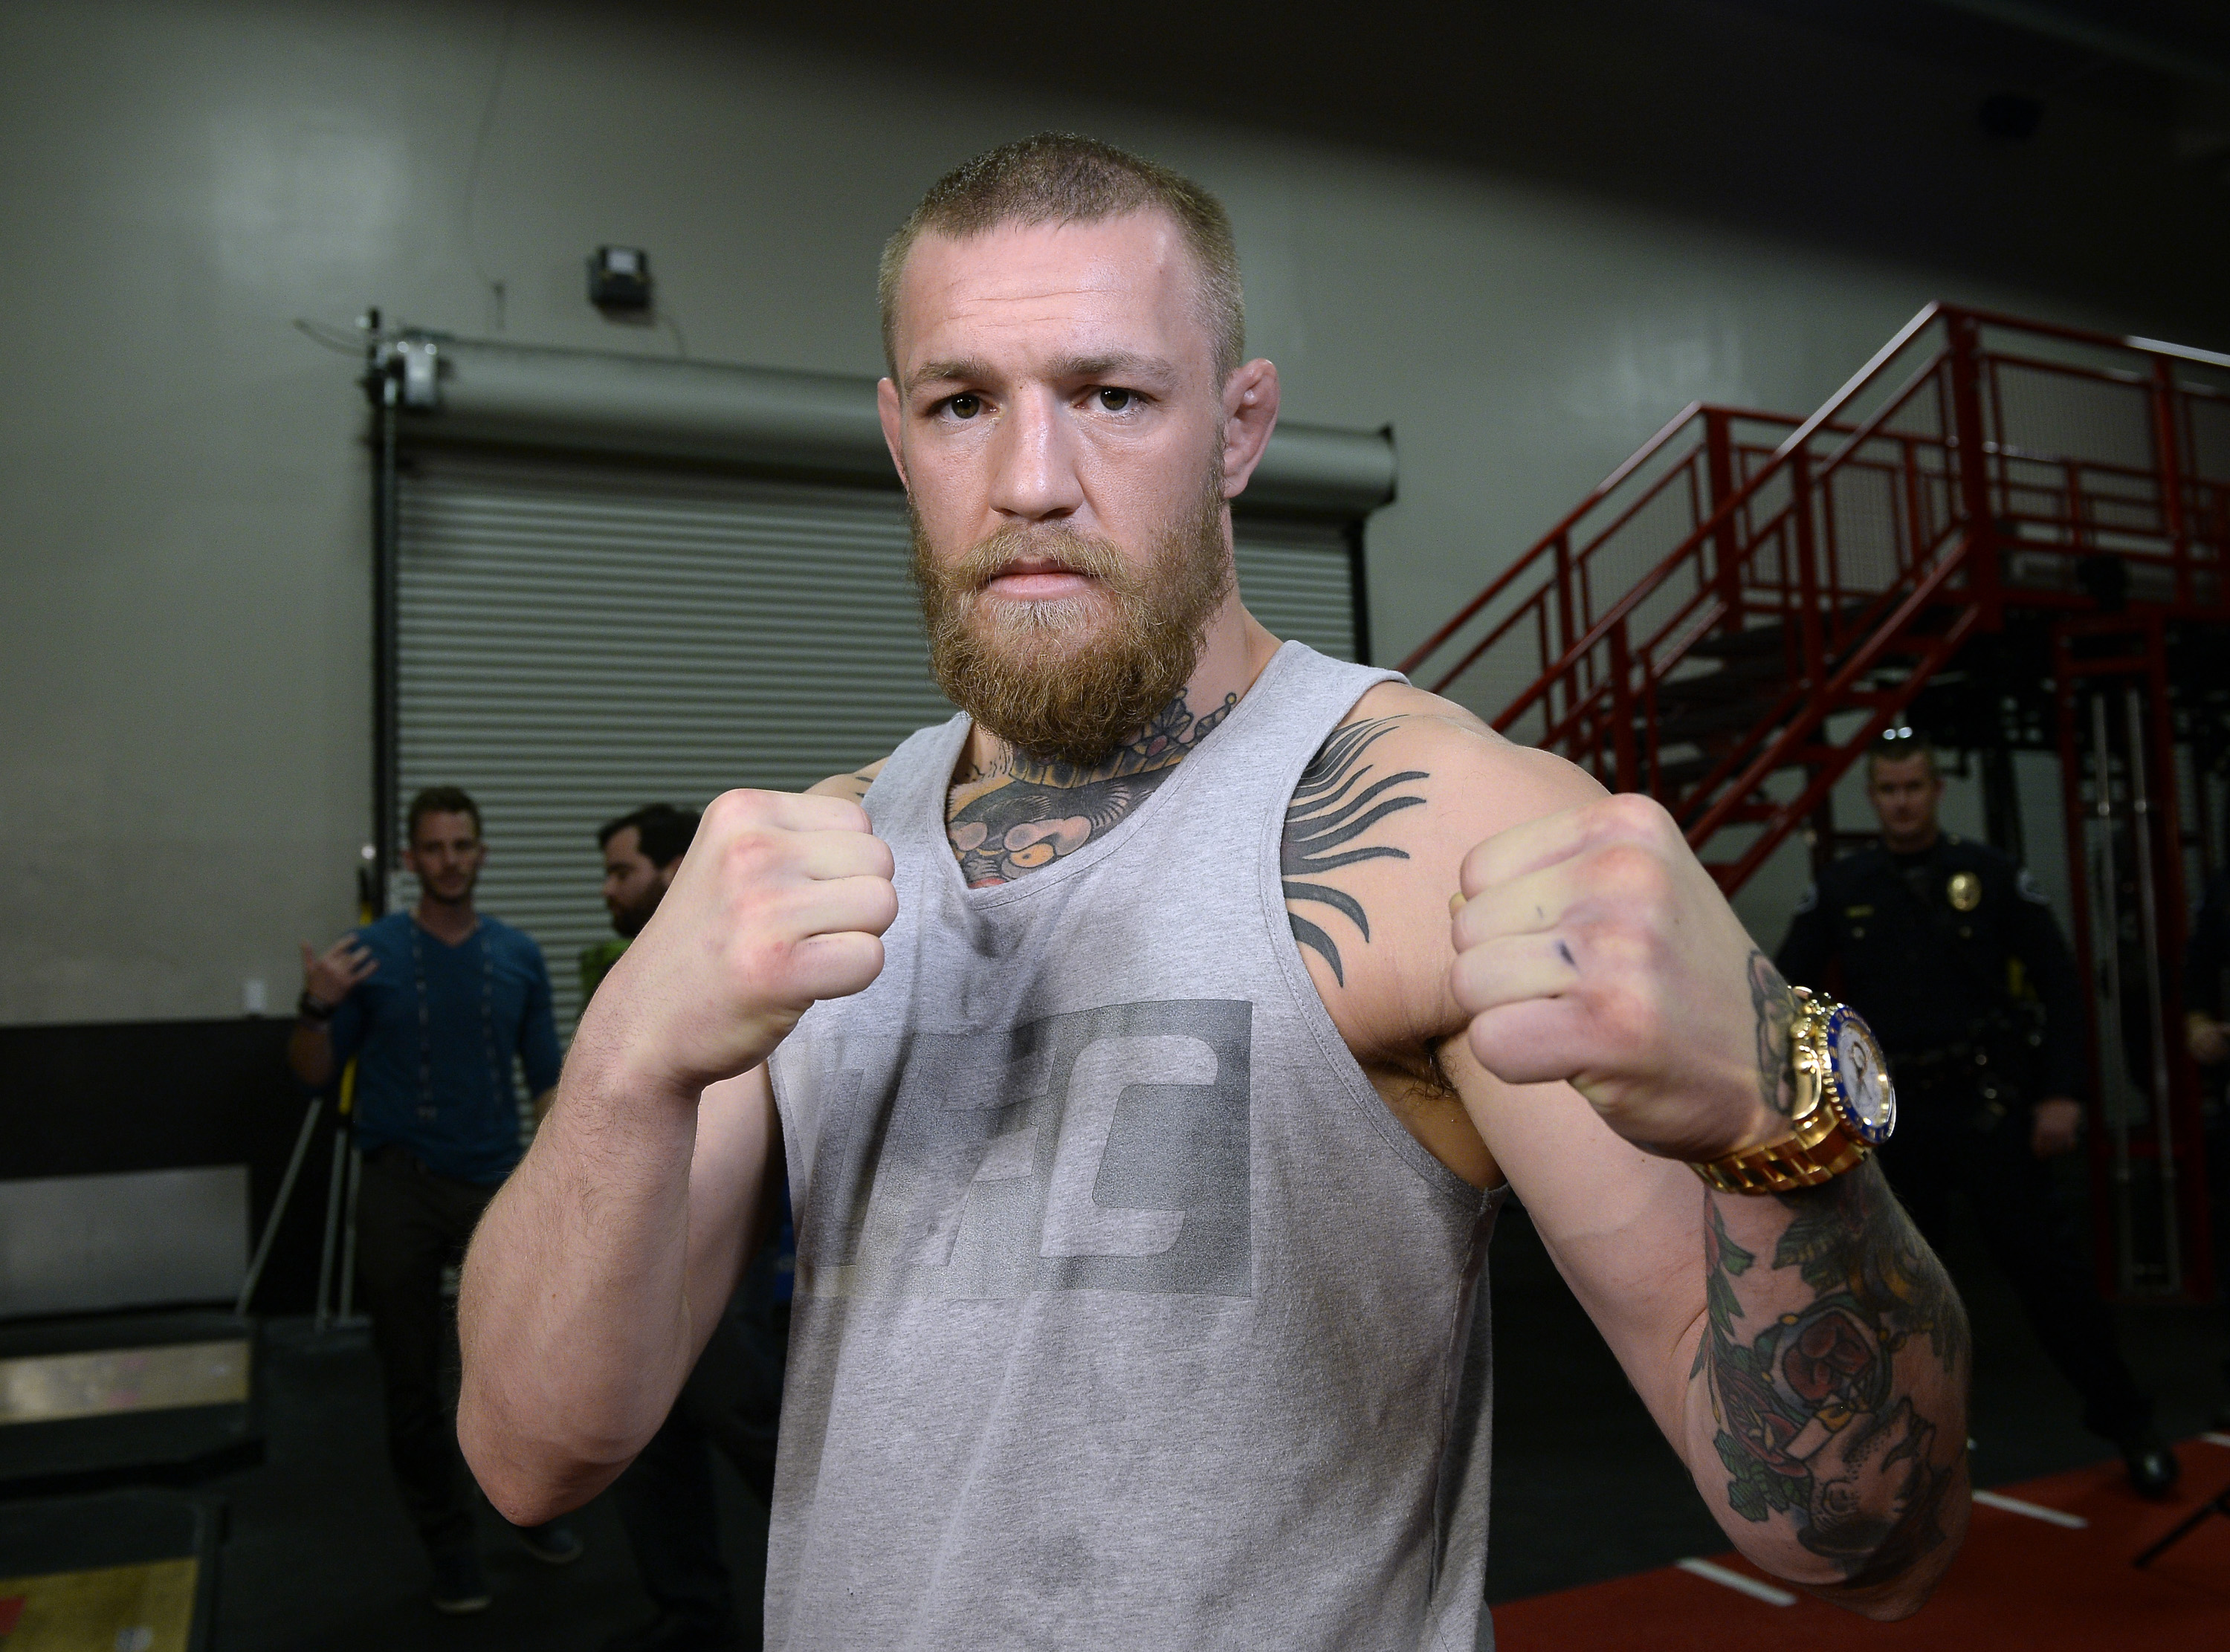 Conor McGregor: UFC Star Tweets Again Thursday, Saying 'No More Games' With Announcement Coming